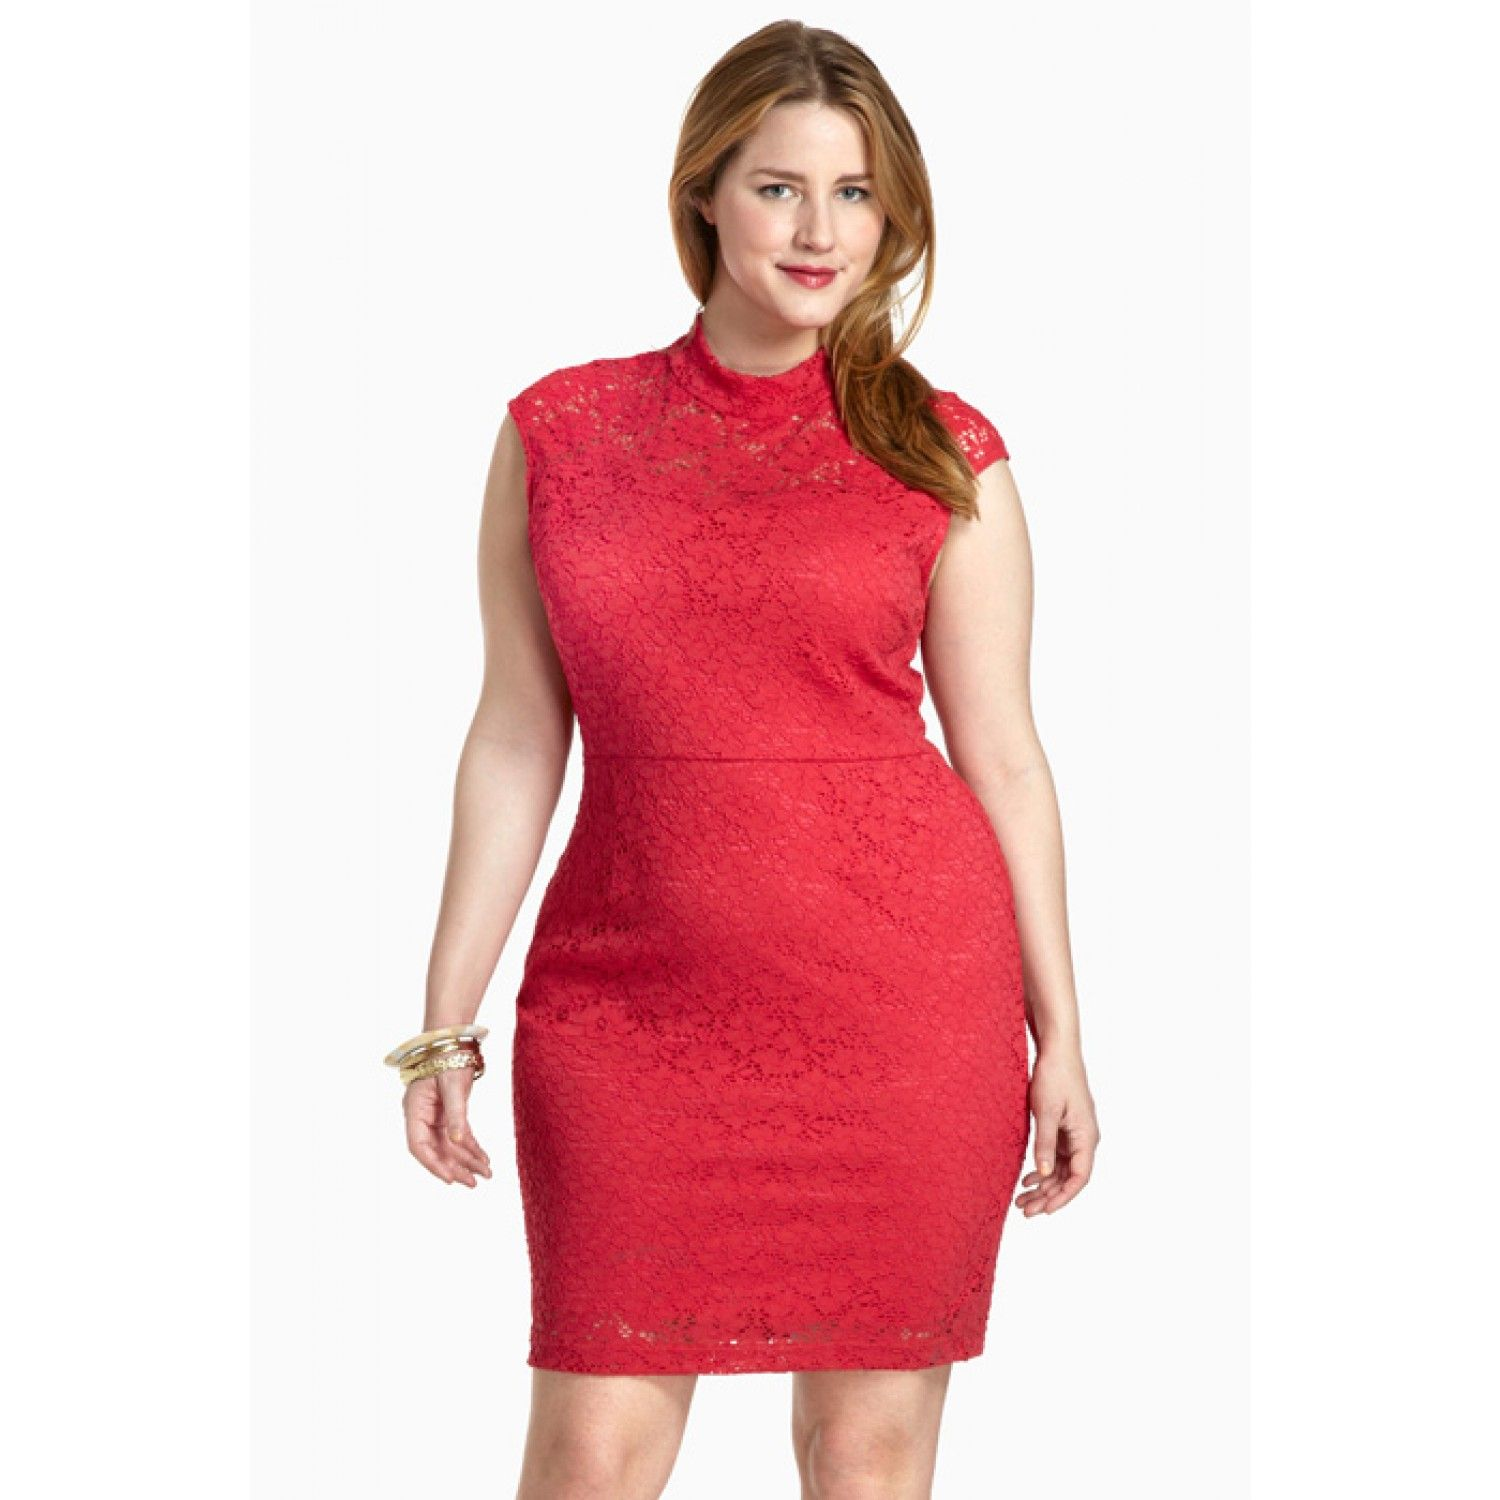 Knockout red lace sleeveless mockturtleneck dress fashiontofigure